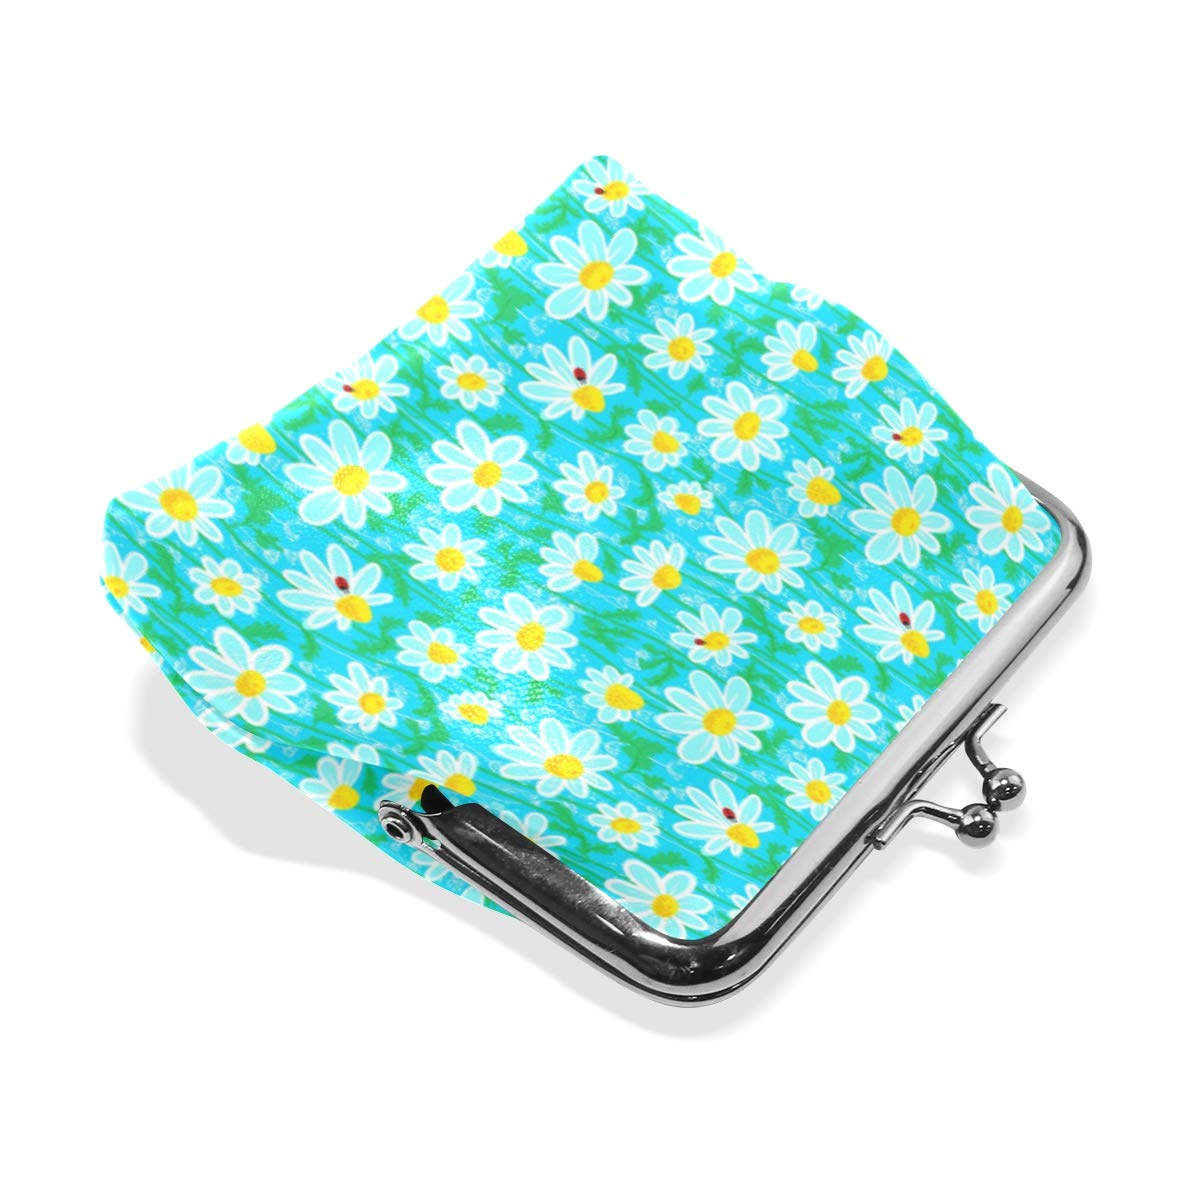 Exquisite Buckle Coin Purses Ladybirds And Camomile Mini Wallet Key Card Holder Purse for Women